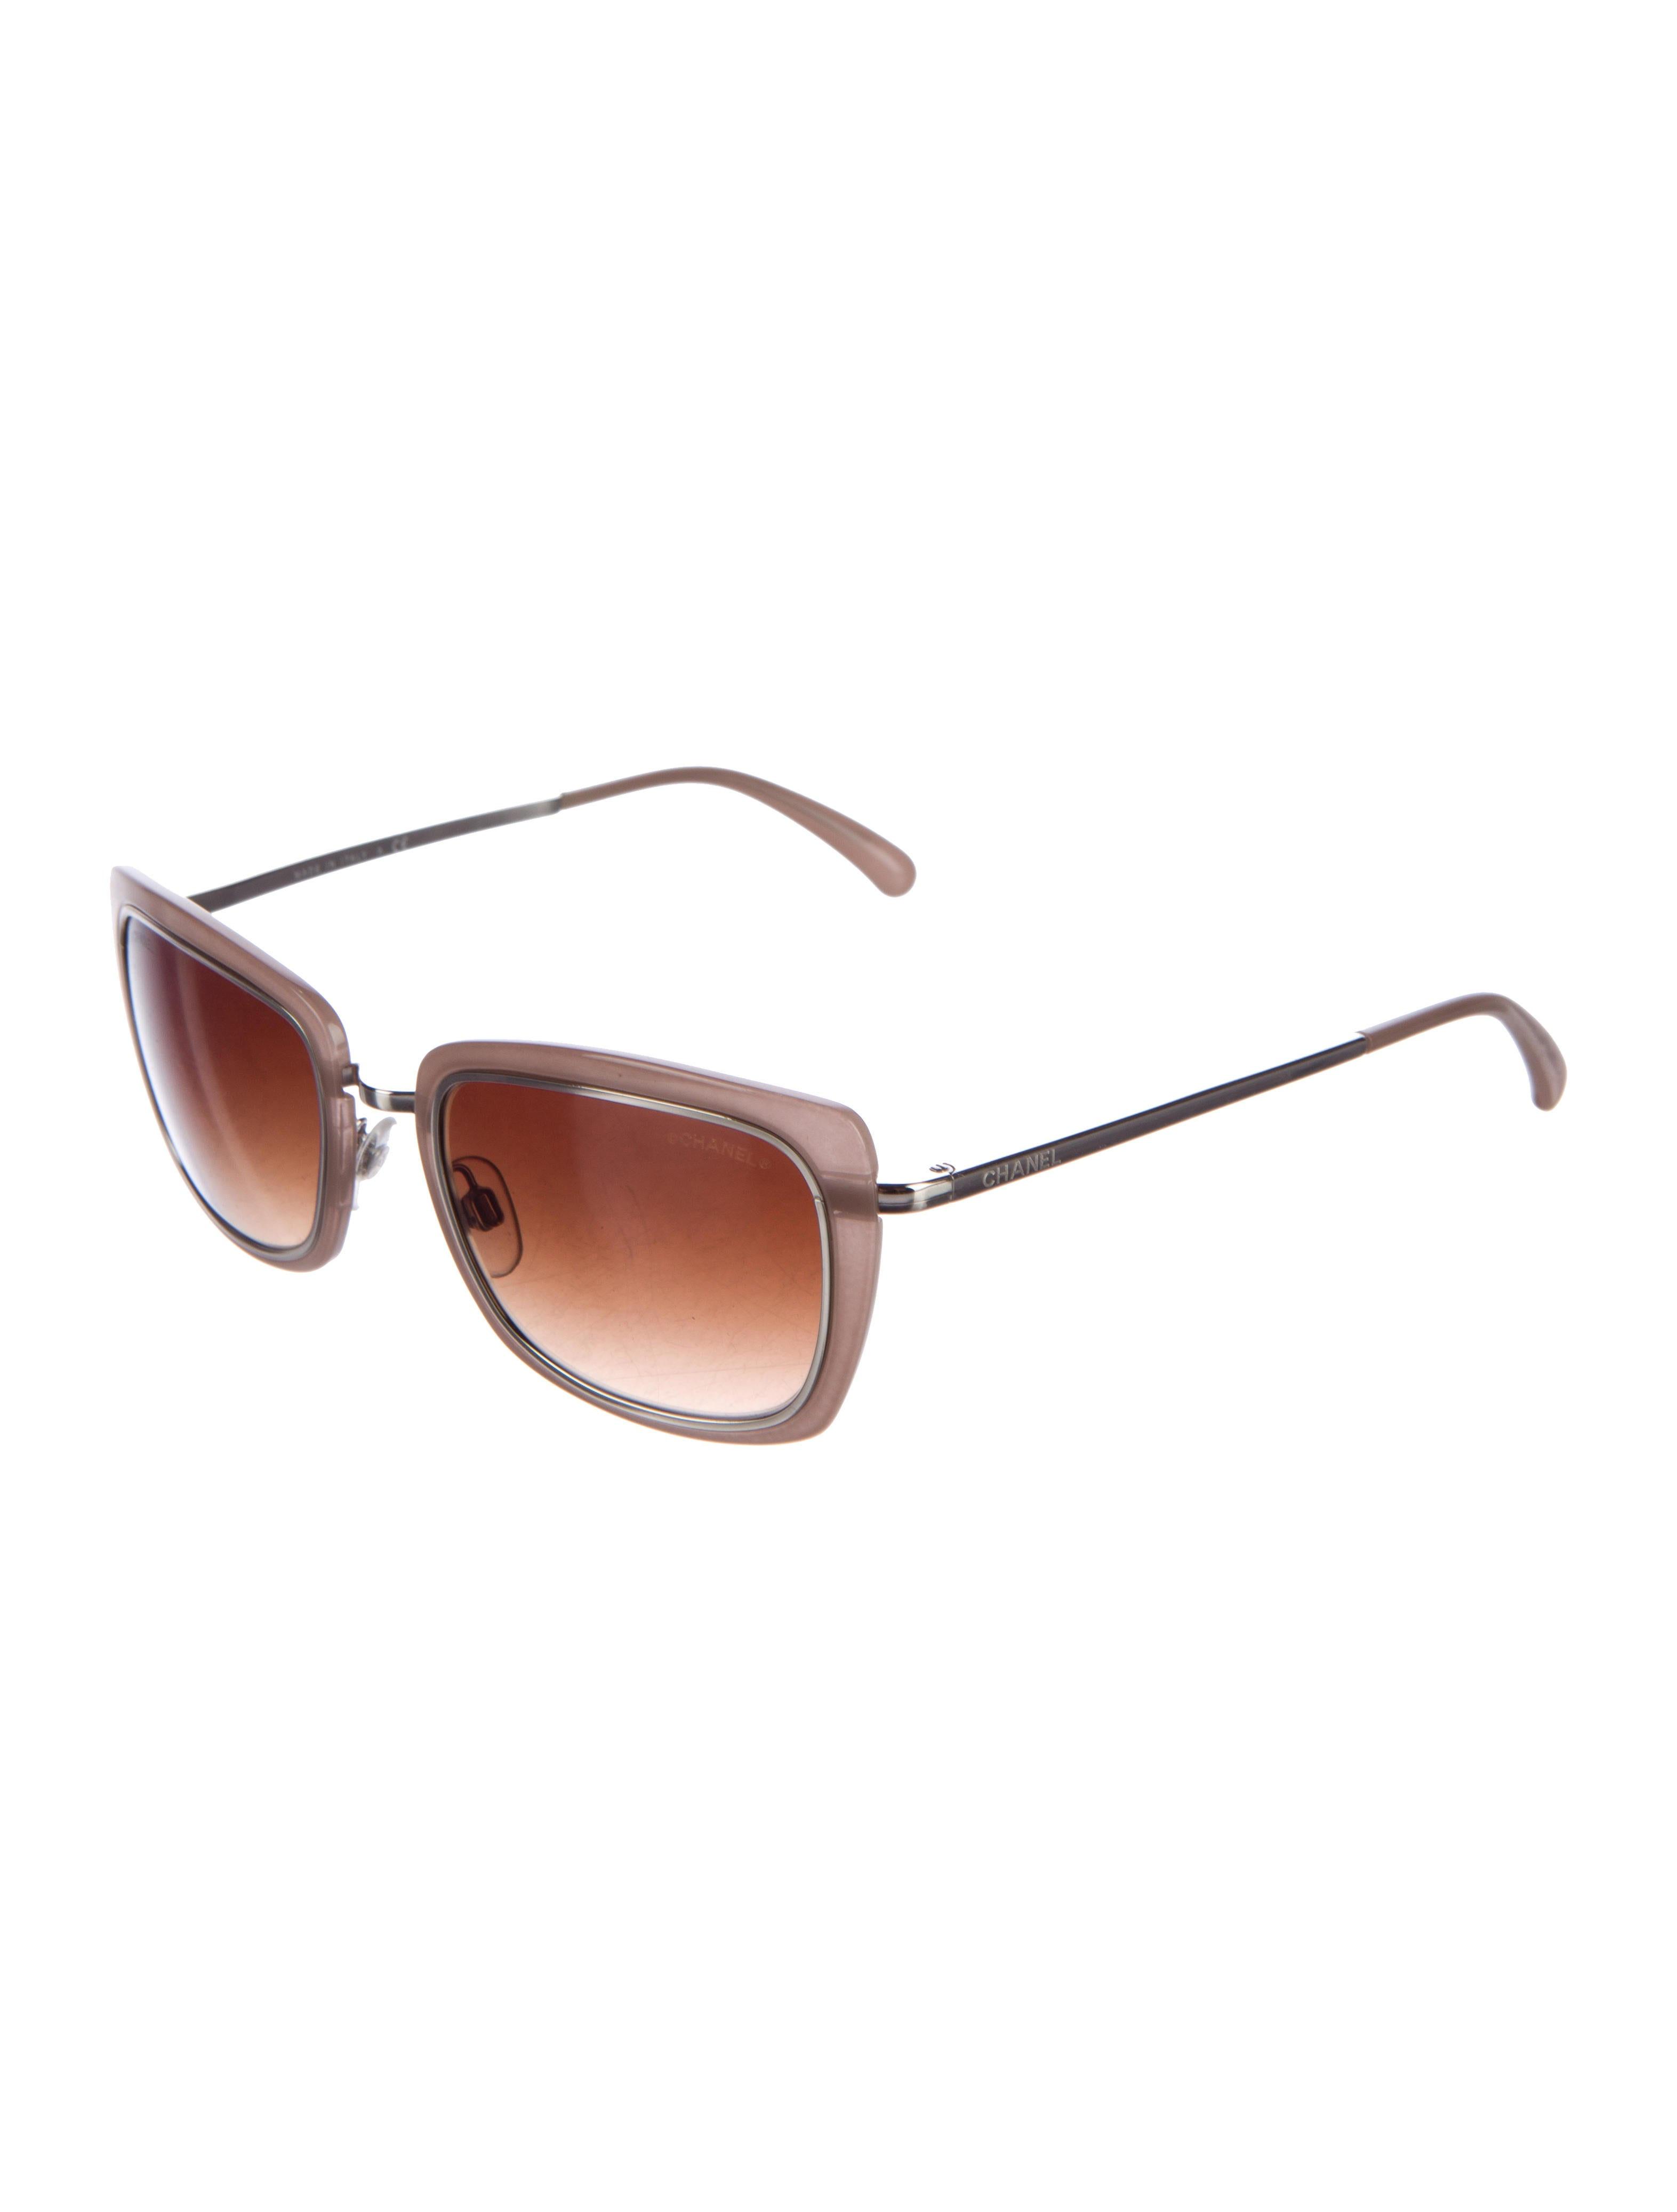 Chanel Rectangle Gradient Sunglasses - Accessories ...